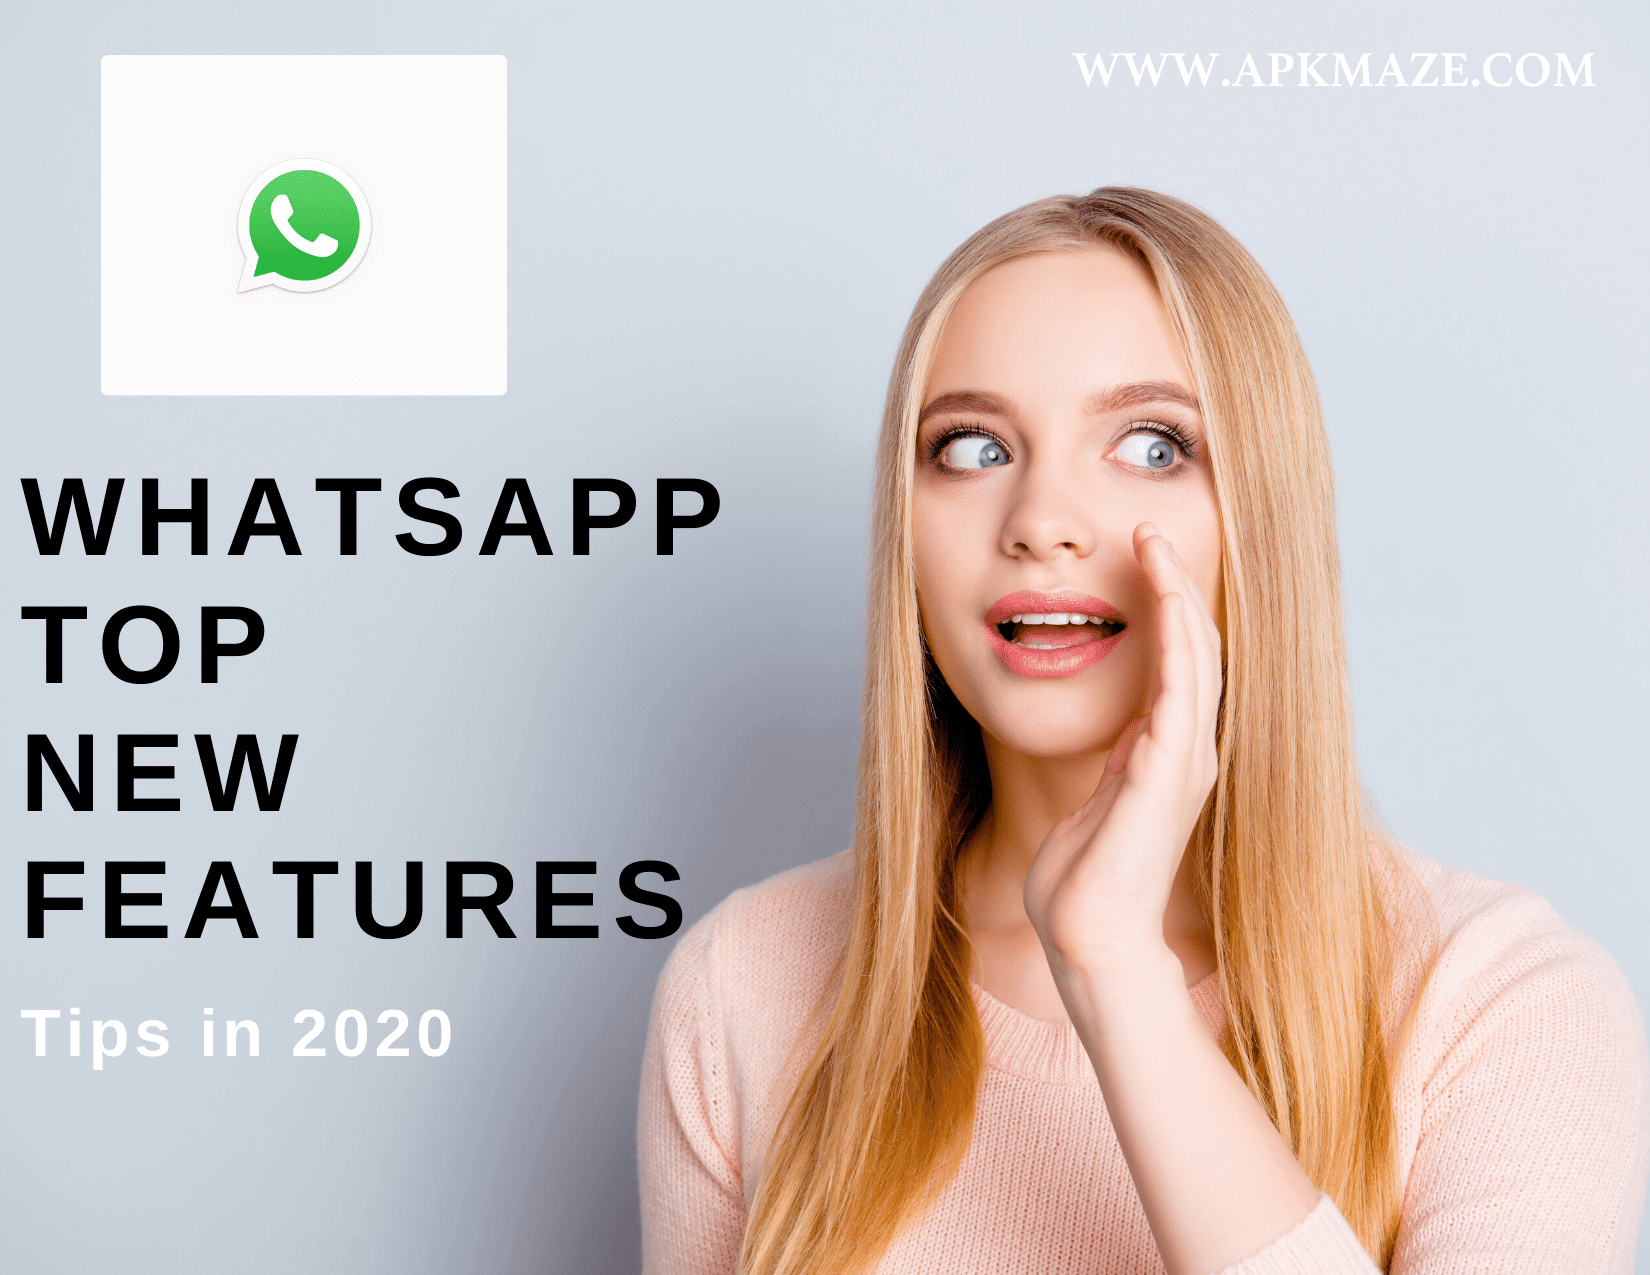 WhatsApp Top New Features